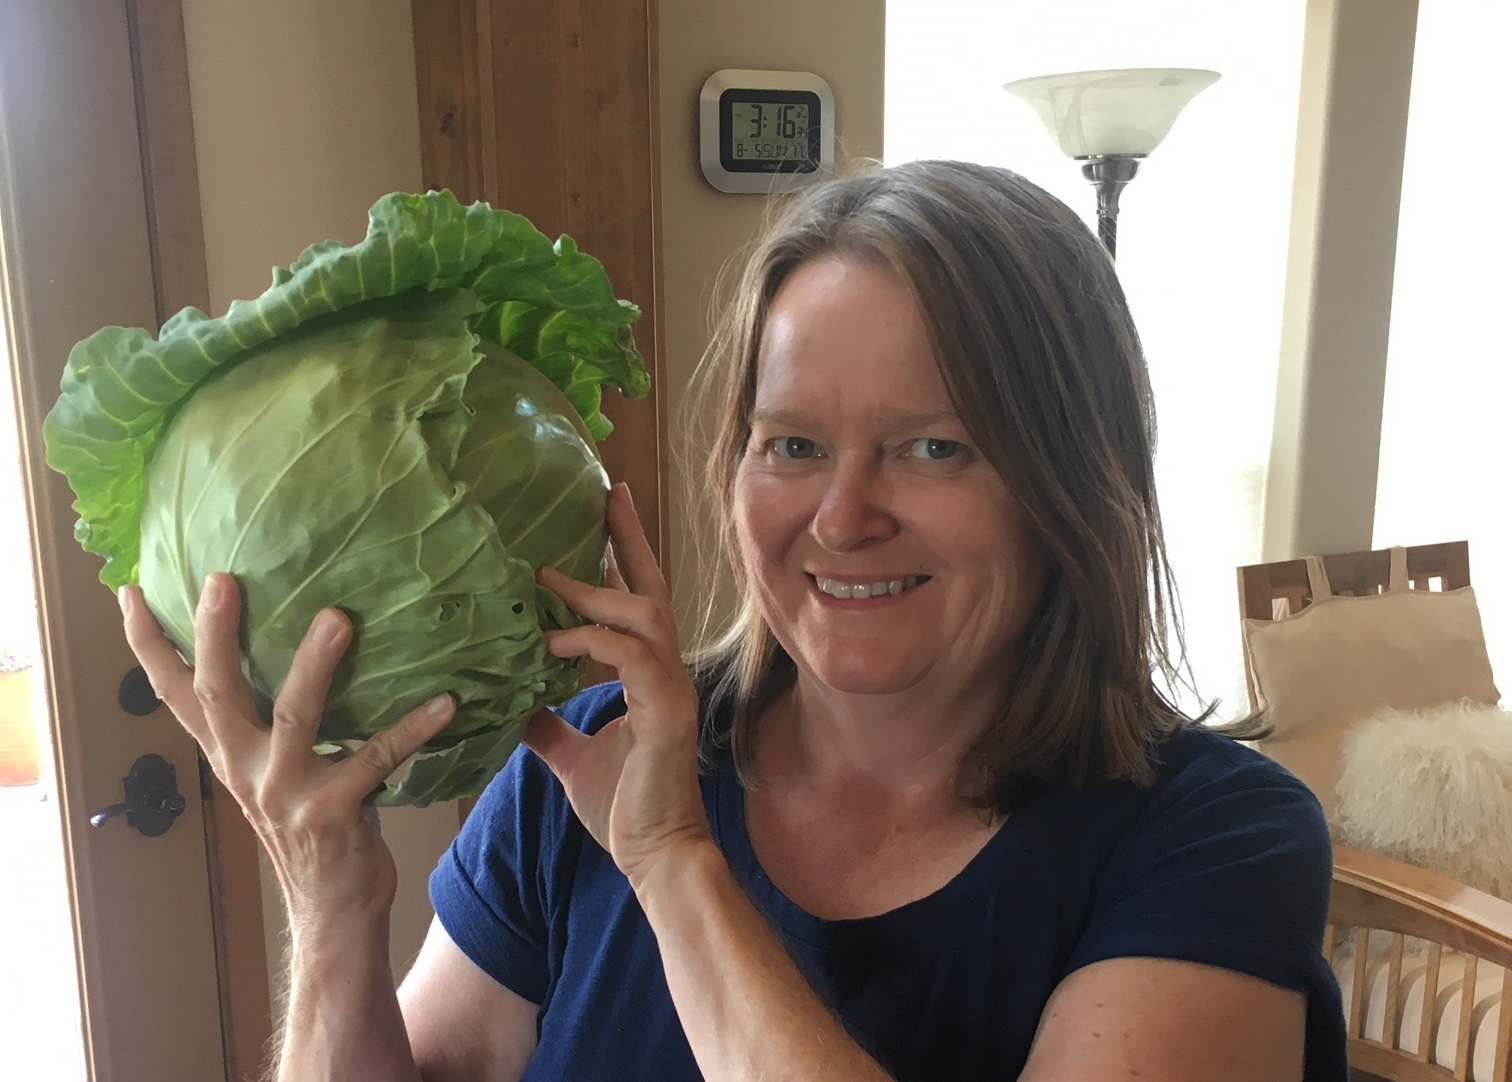 Now THAT's a cabbage!